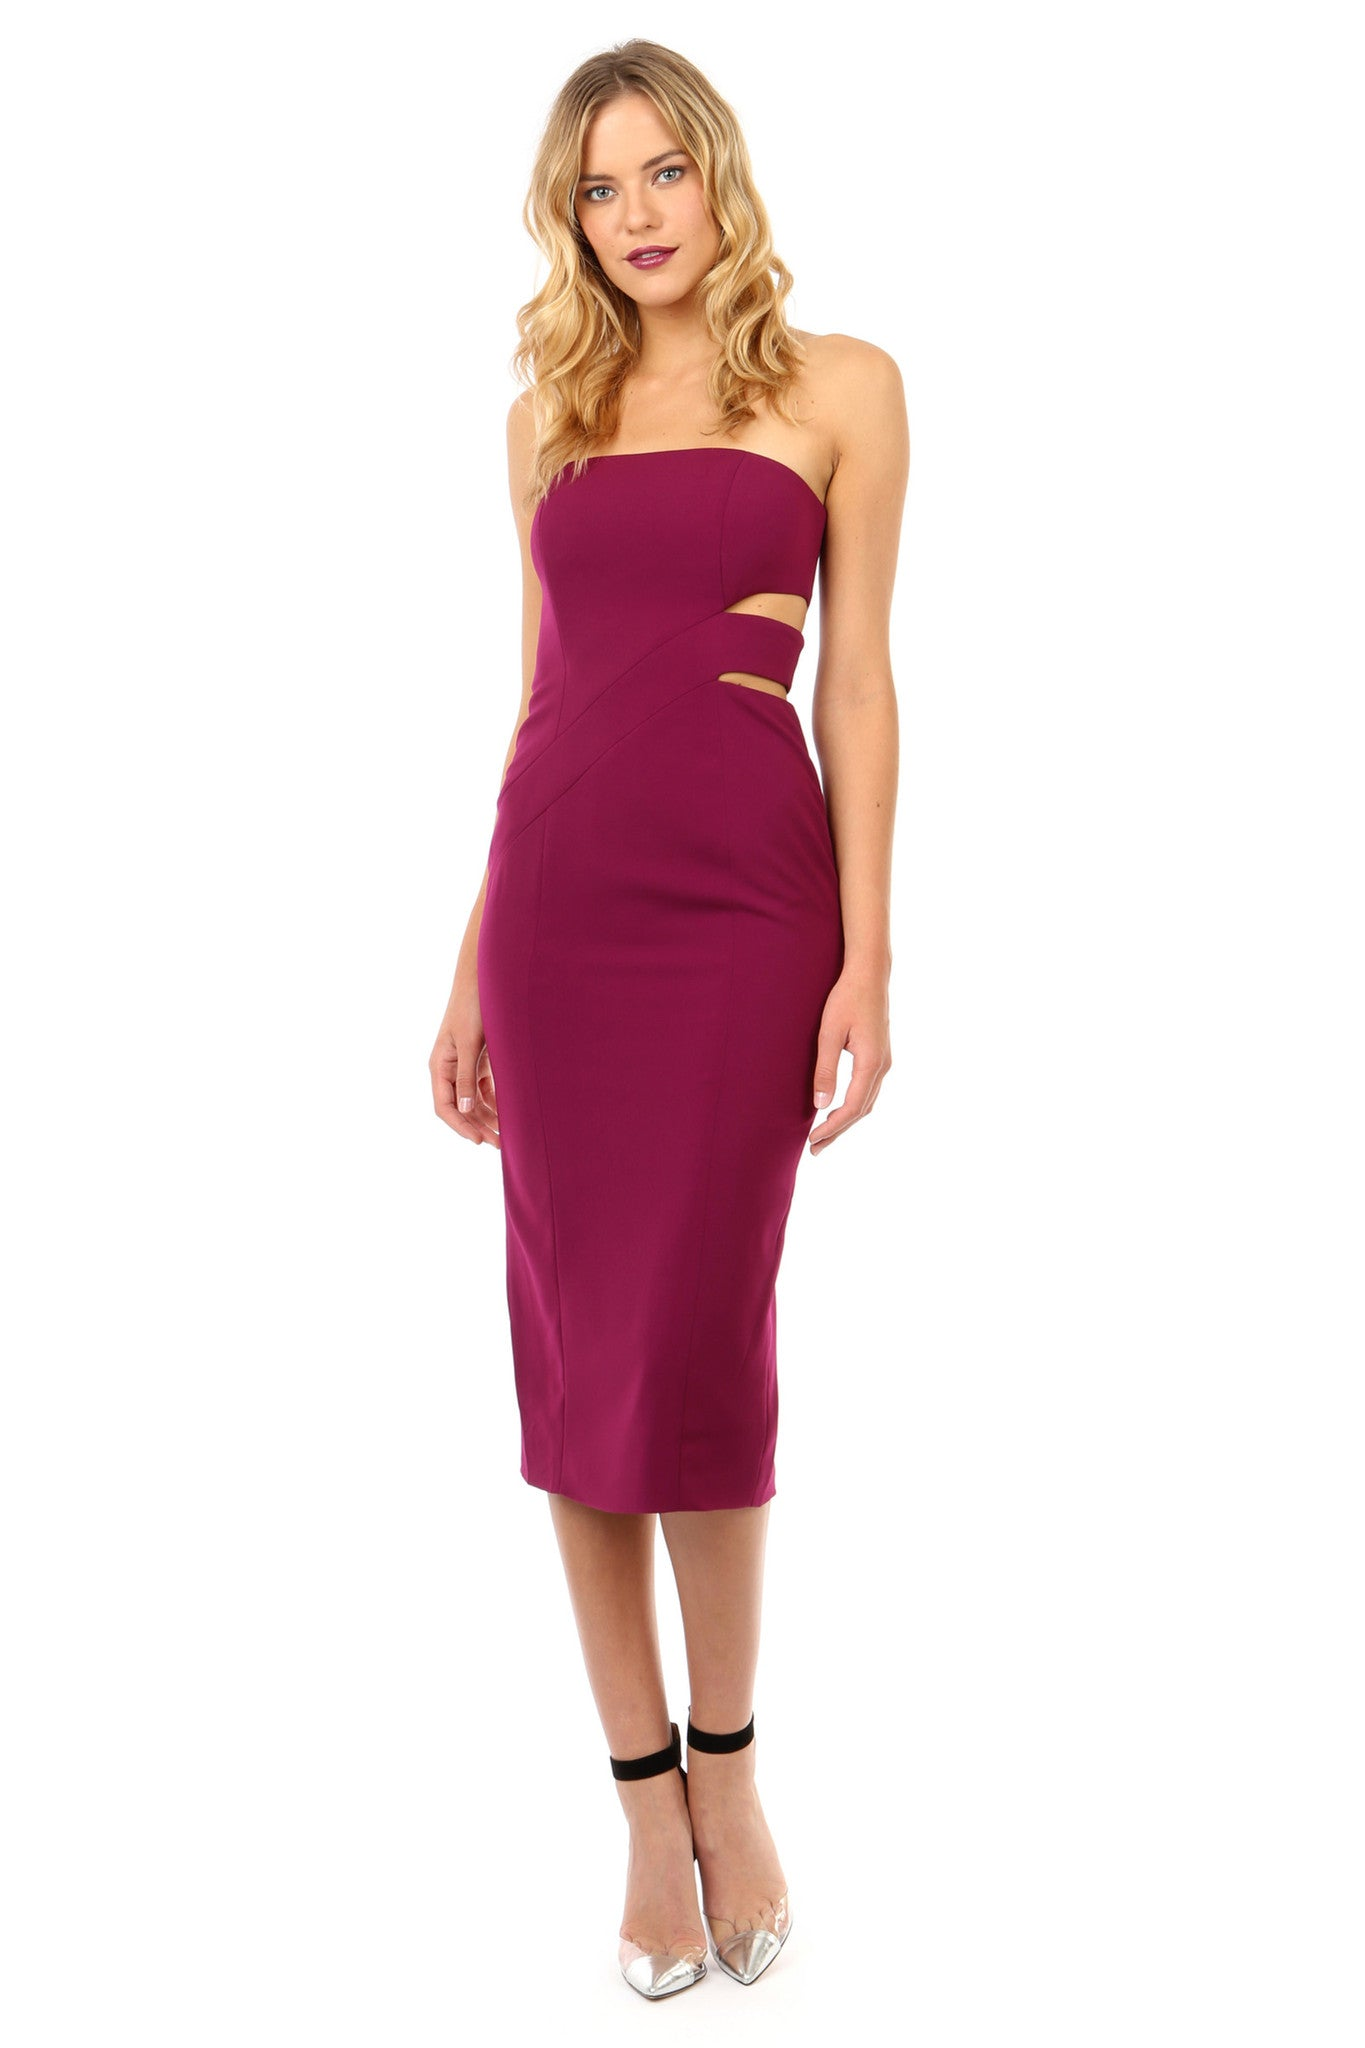 Jay Godfrey Plum Strapless Cut-Out Midi Dress - Front View